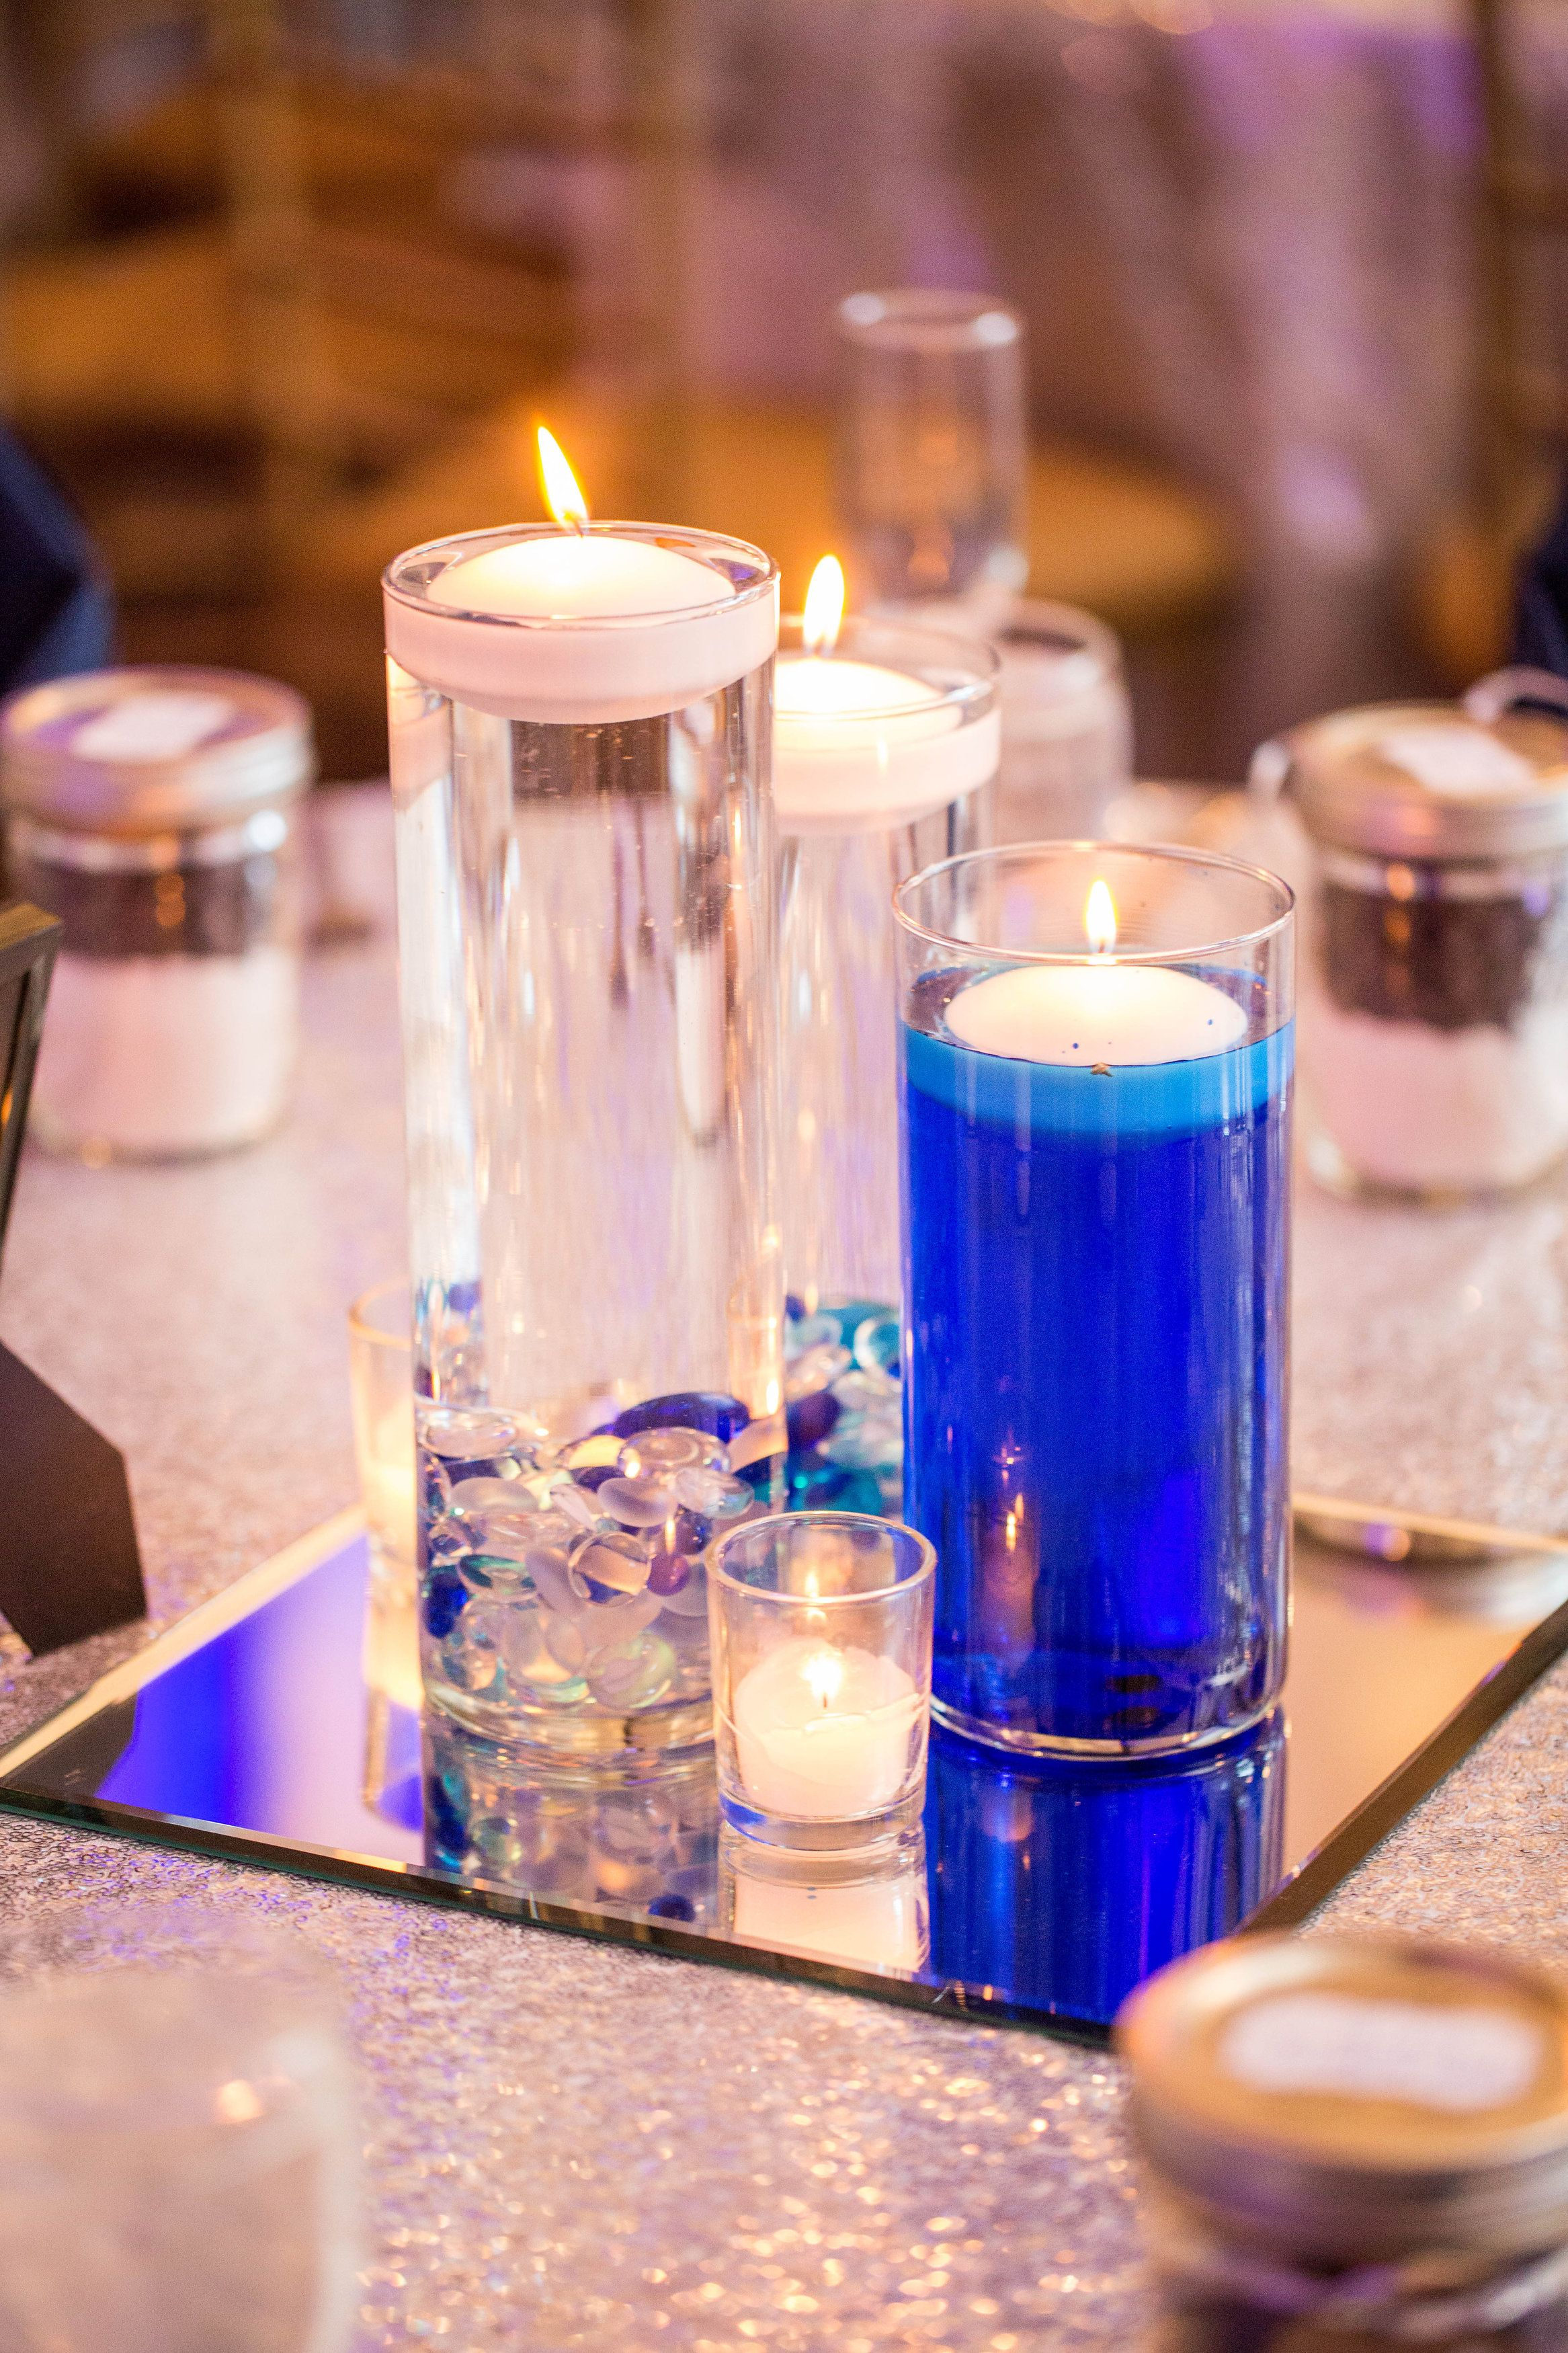 Frozen Themed Centerpieces - Winter Wedding Centerpieces